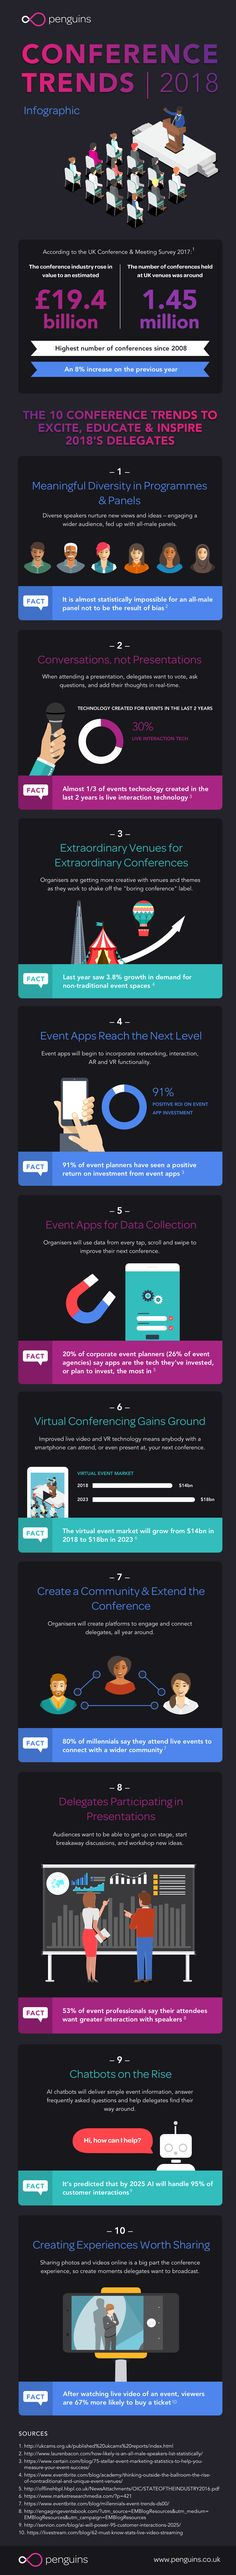 Conference Trends 2018: Our Infographic